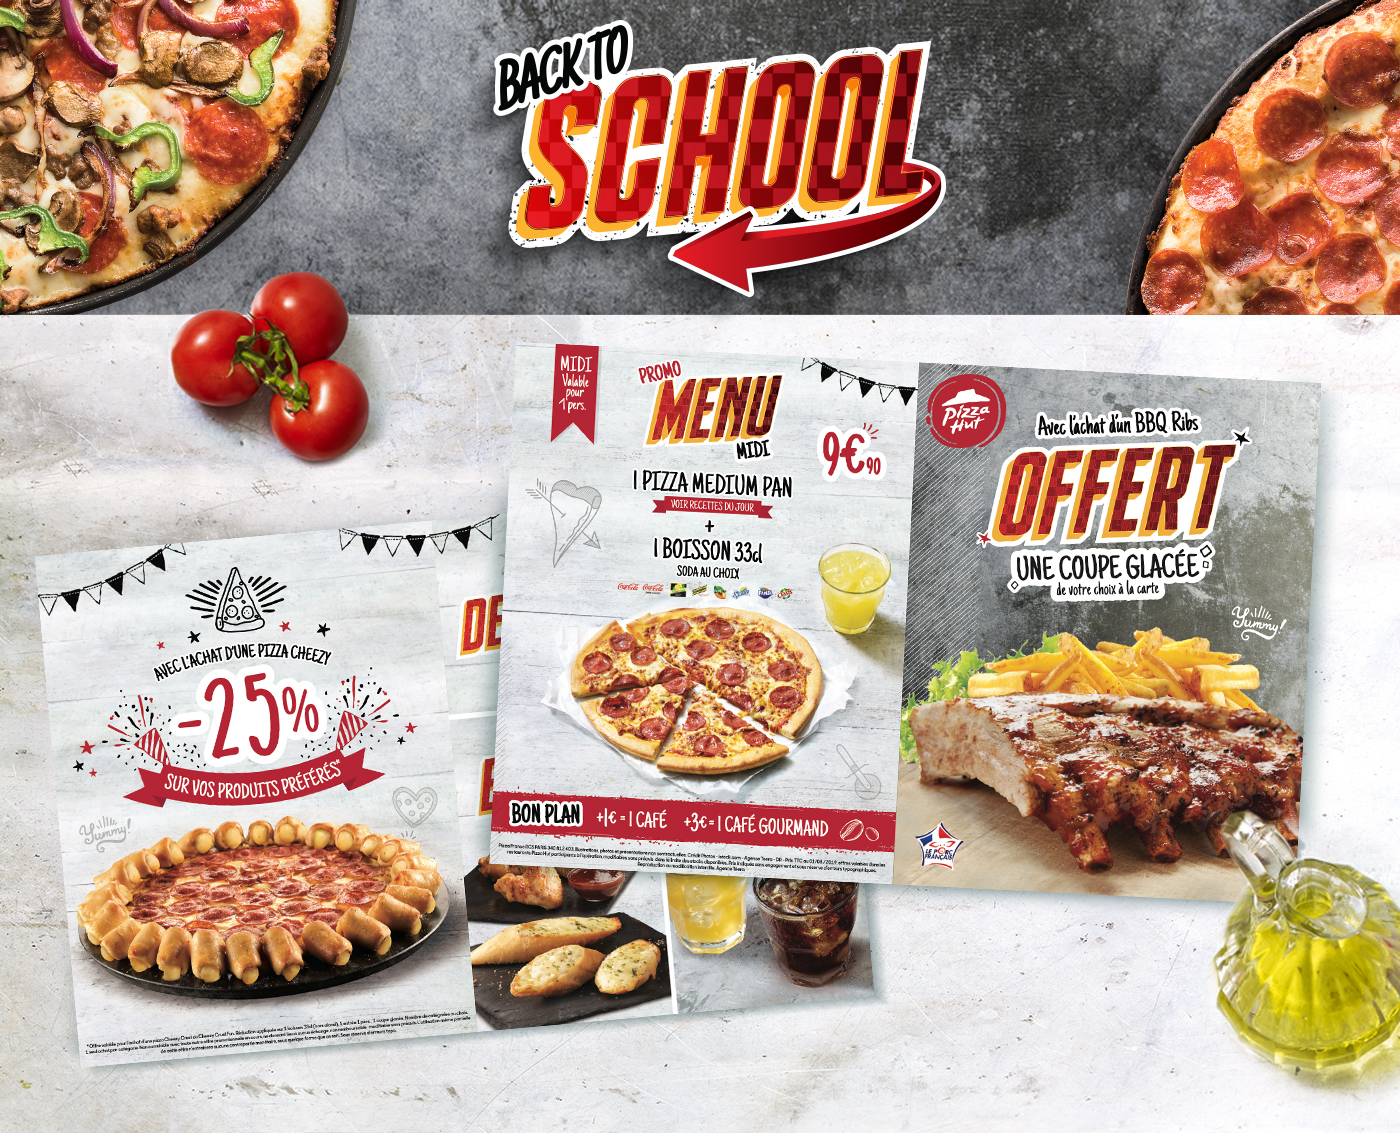 PIZZAHUT_BACKTOSCHOOL